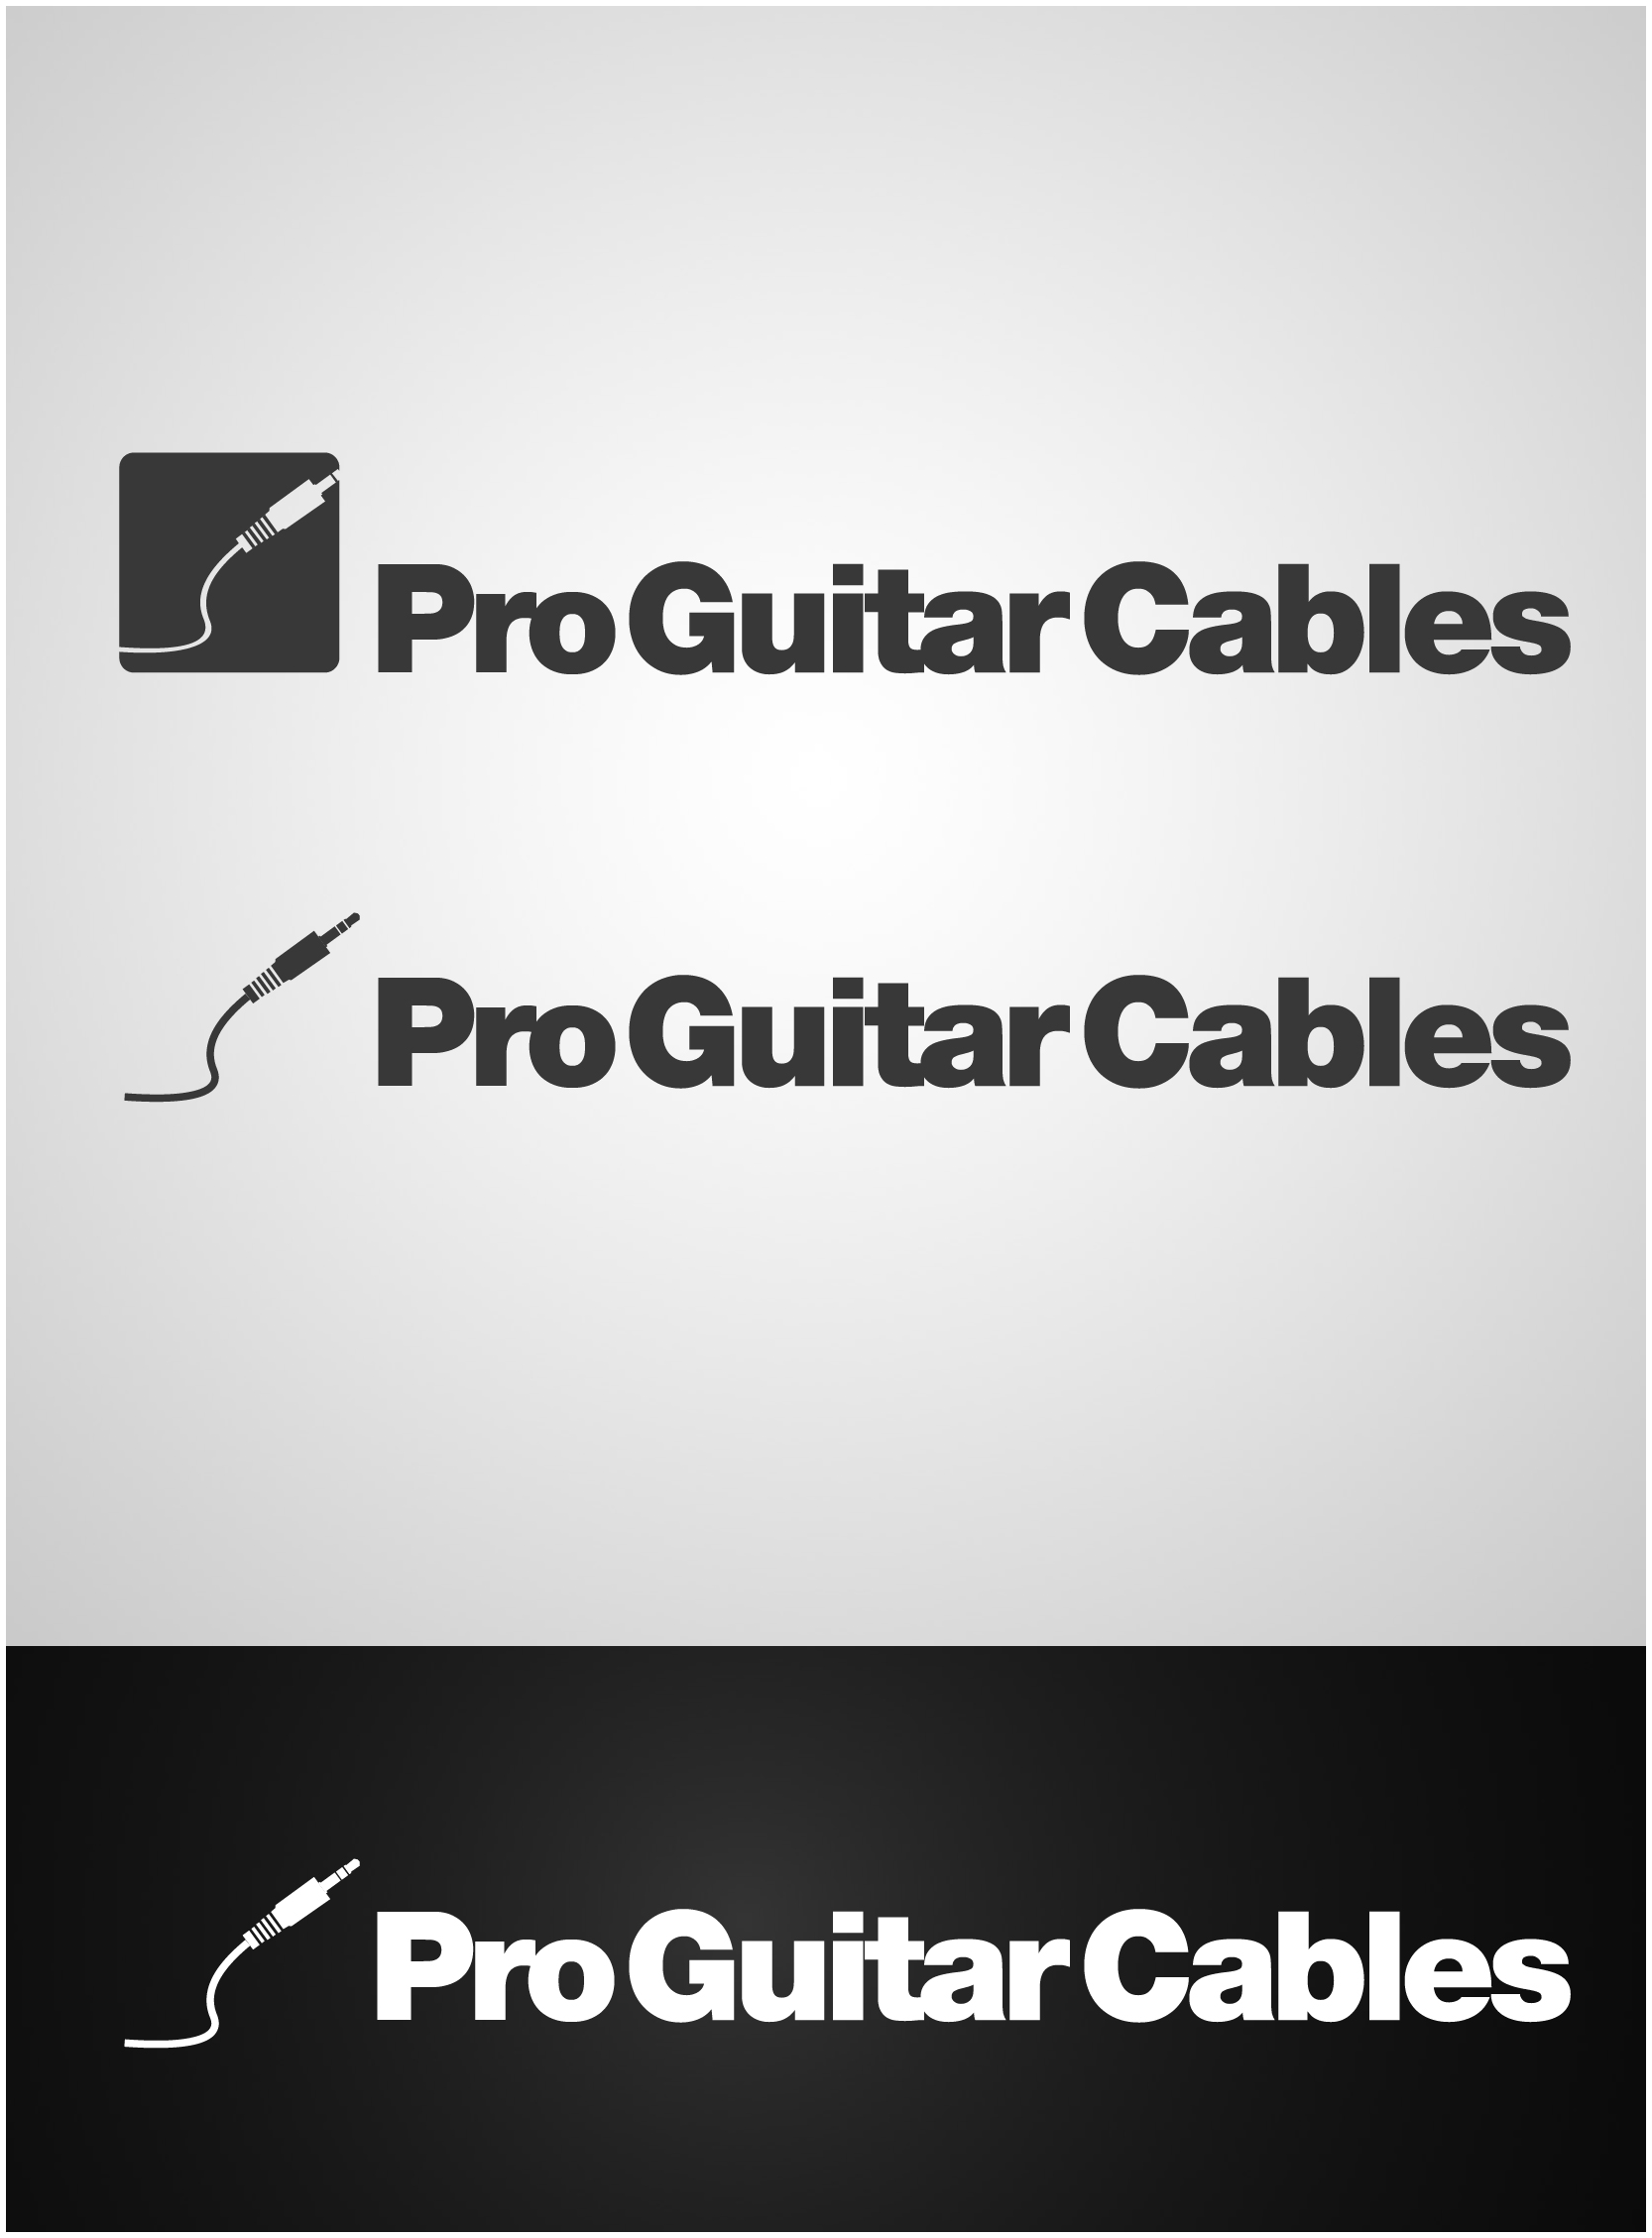 Logo Design by gkonta - Entry No. 59 in the Logo Design Contest Pro Guitar Cables Logo Design.